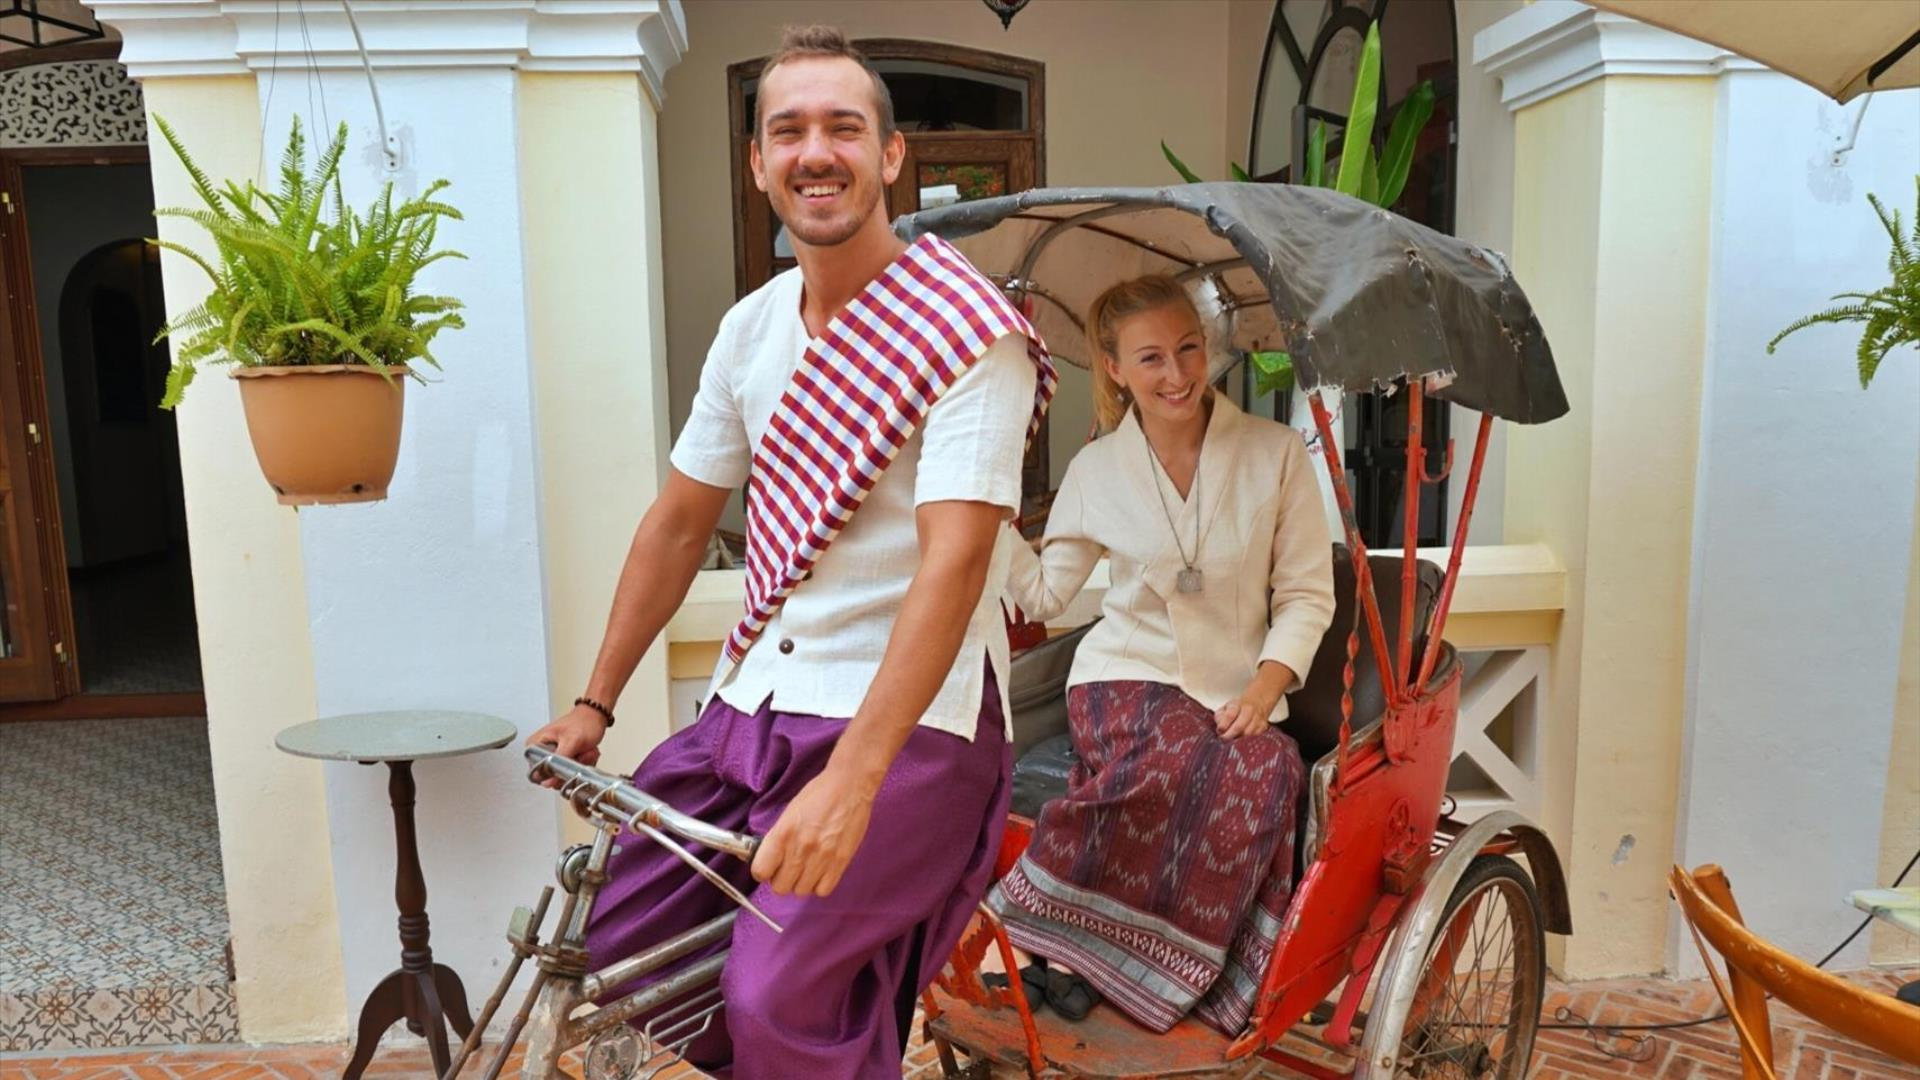 Laos, Luang Prabang: Dress like a local - Half Day | Visit Locations in style